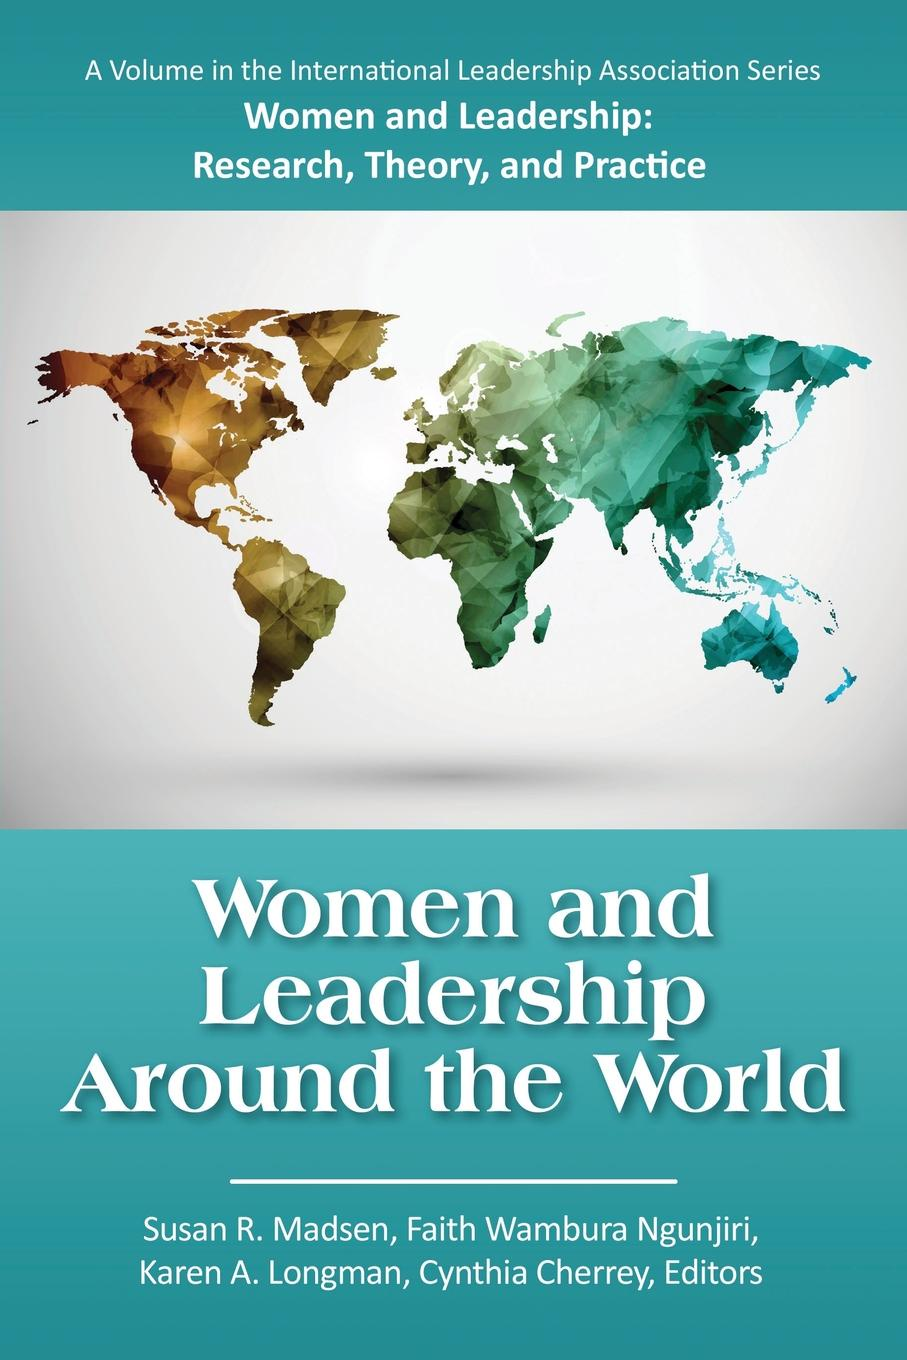 Women and Leadership Around the World kuppersbusch kd 6375 2 ge